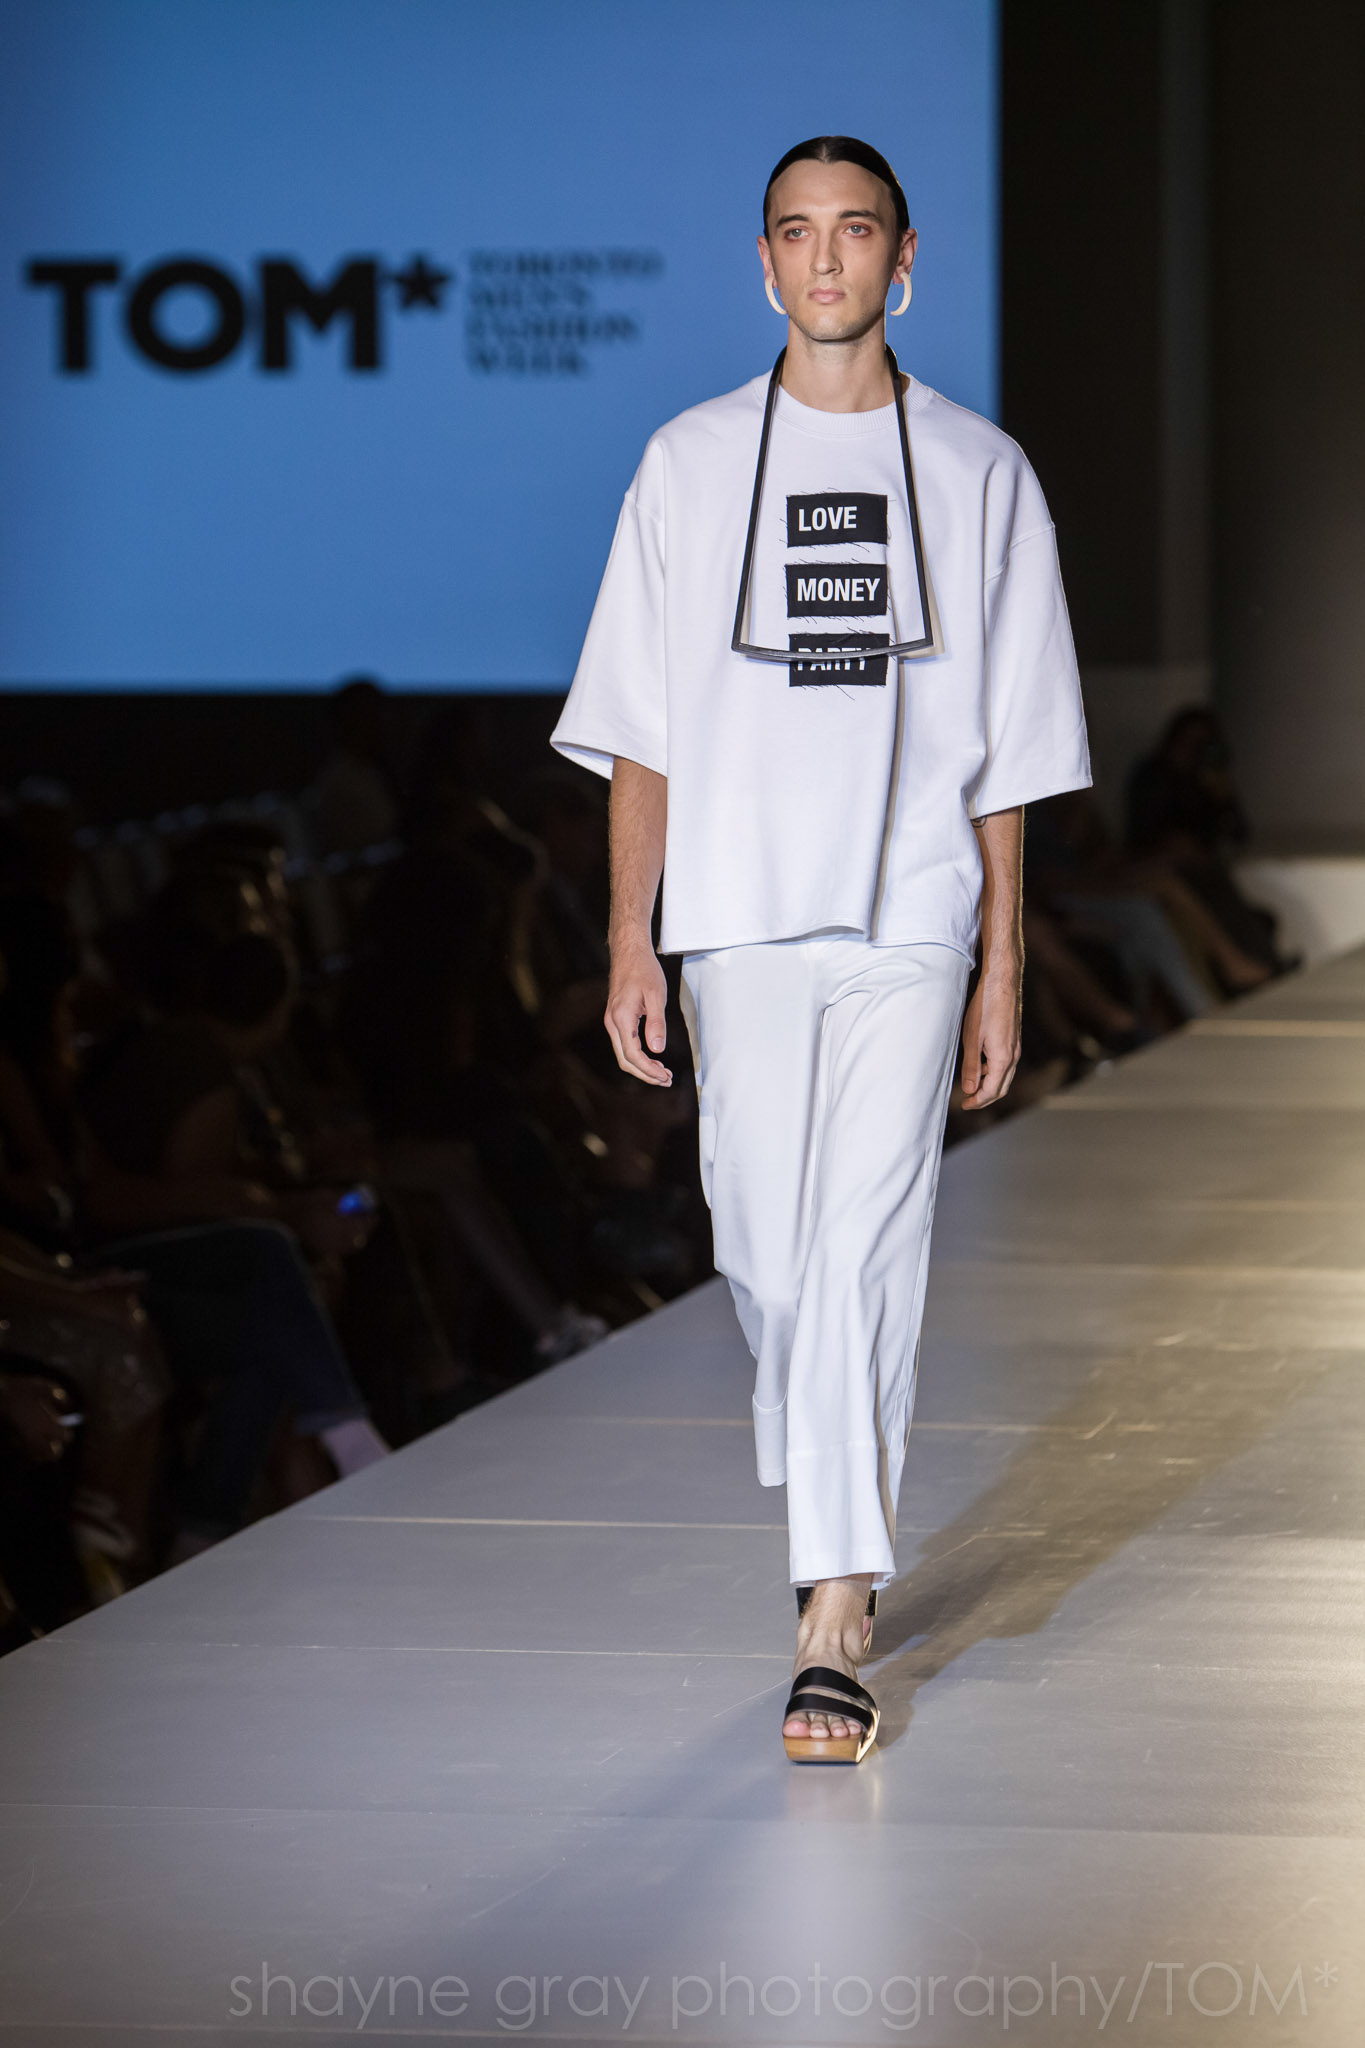 Shayne-Gray-Toronto-men's-fashion_week-TOM-wrkdept-8703.jpg